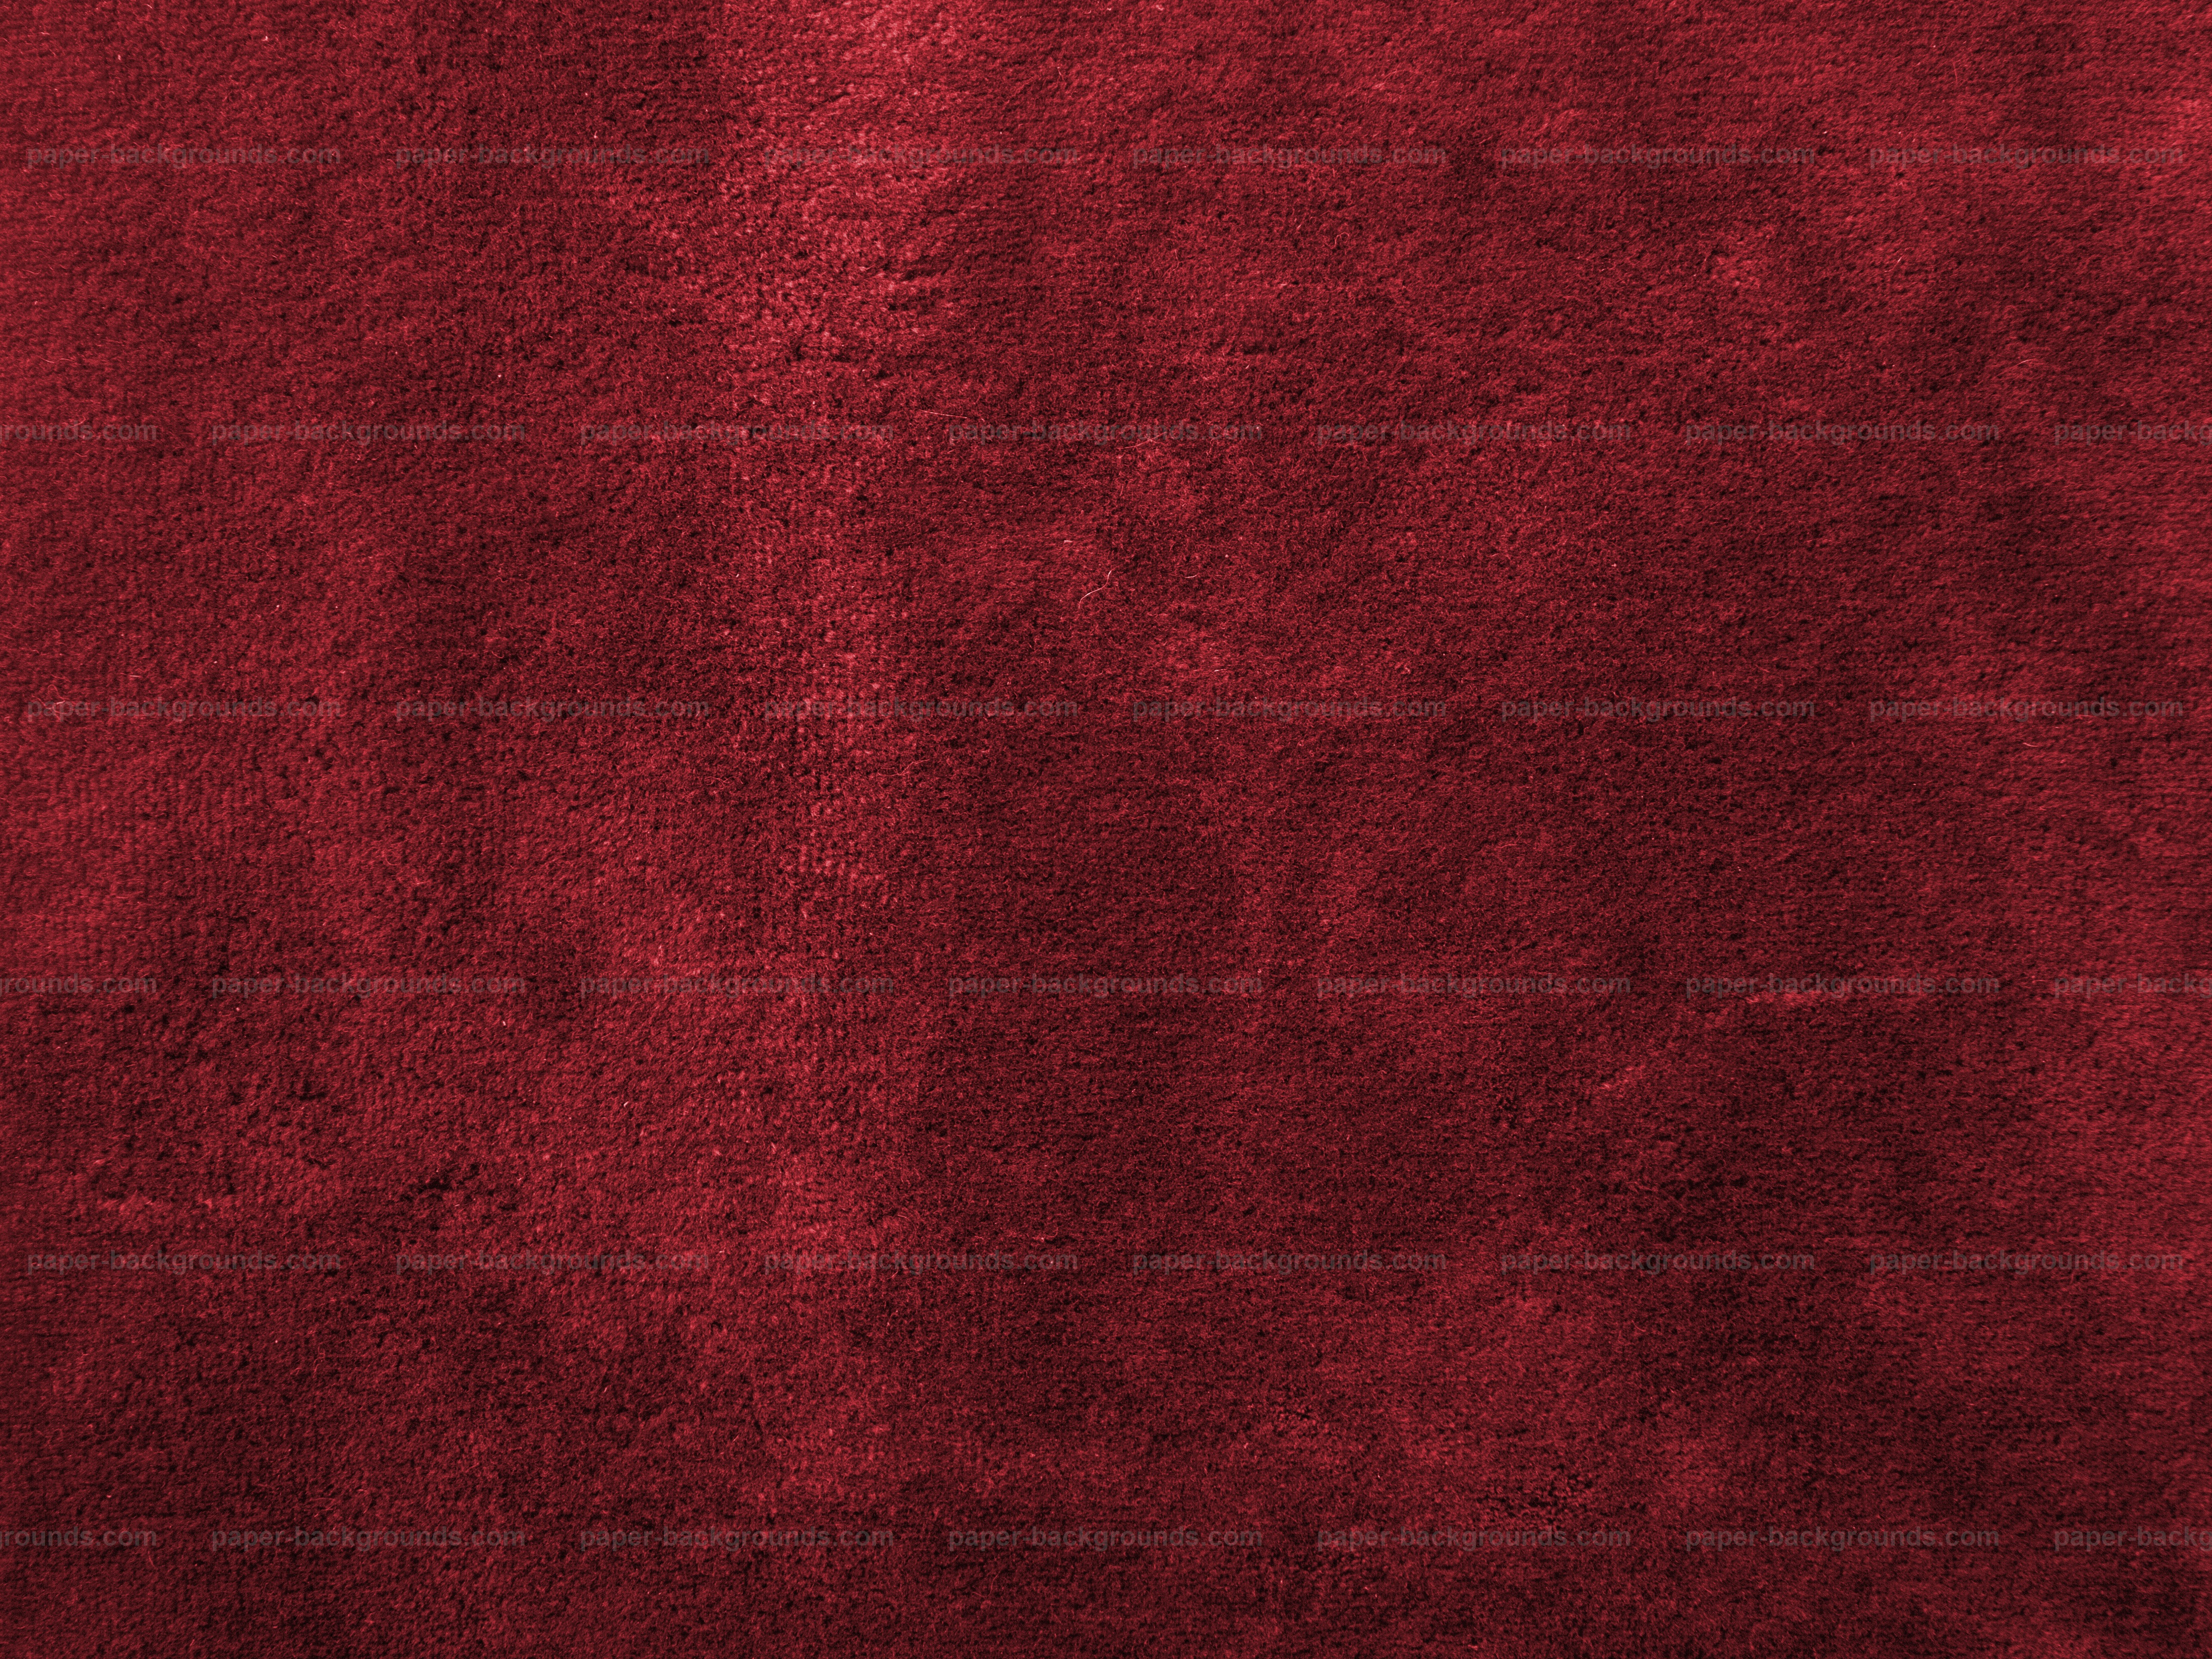 Paper Backgrounds | Red Velvet Texture Background